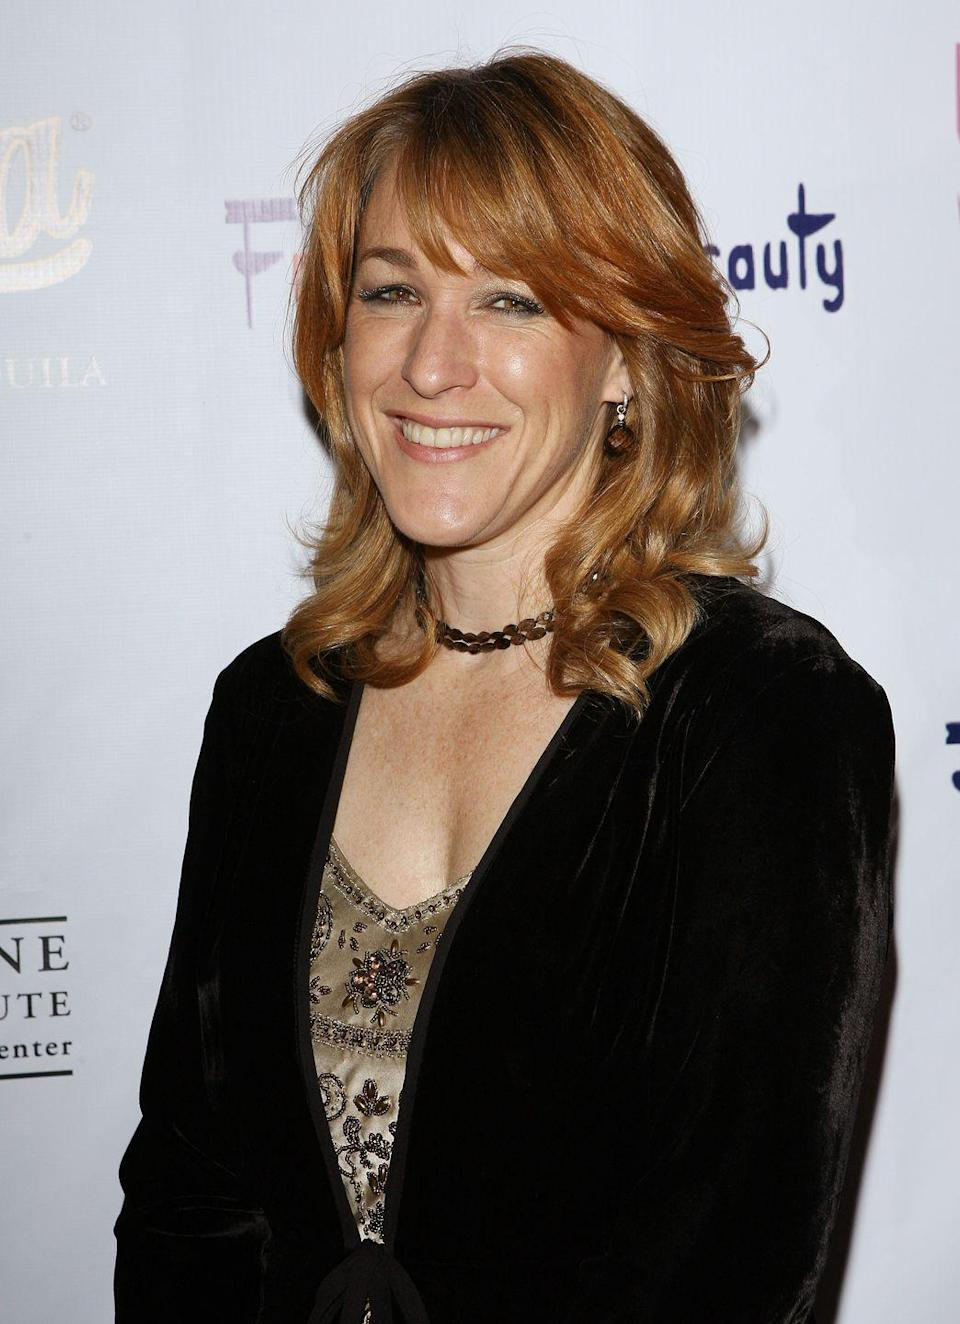 <p>Kathleen Wilhoite joined the cast in 2004 as Luke Dane's flakey sister, Liz. But while she was new to the show, Kathleen was certainly not new to the industry. She starred in films throughout the '80s and '90s, including <em>The Edge. </em></p>